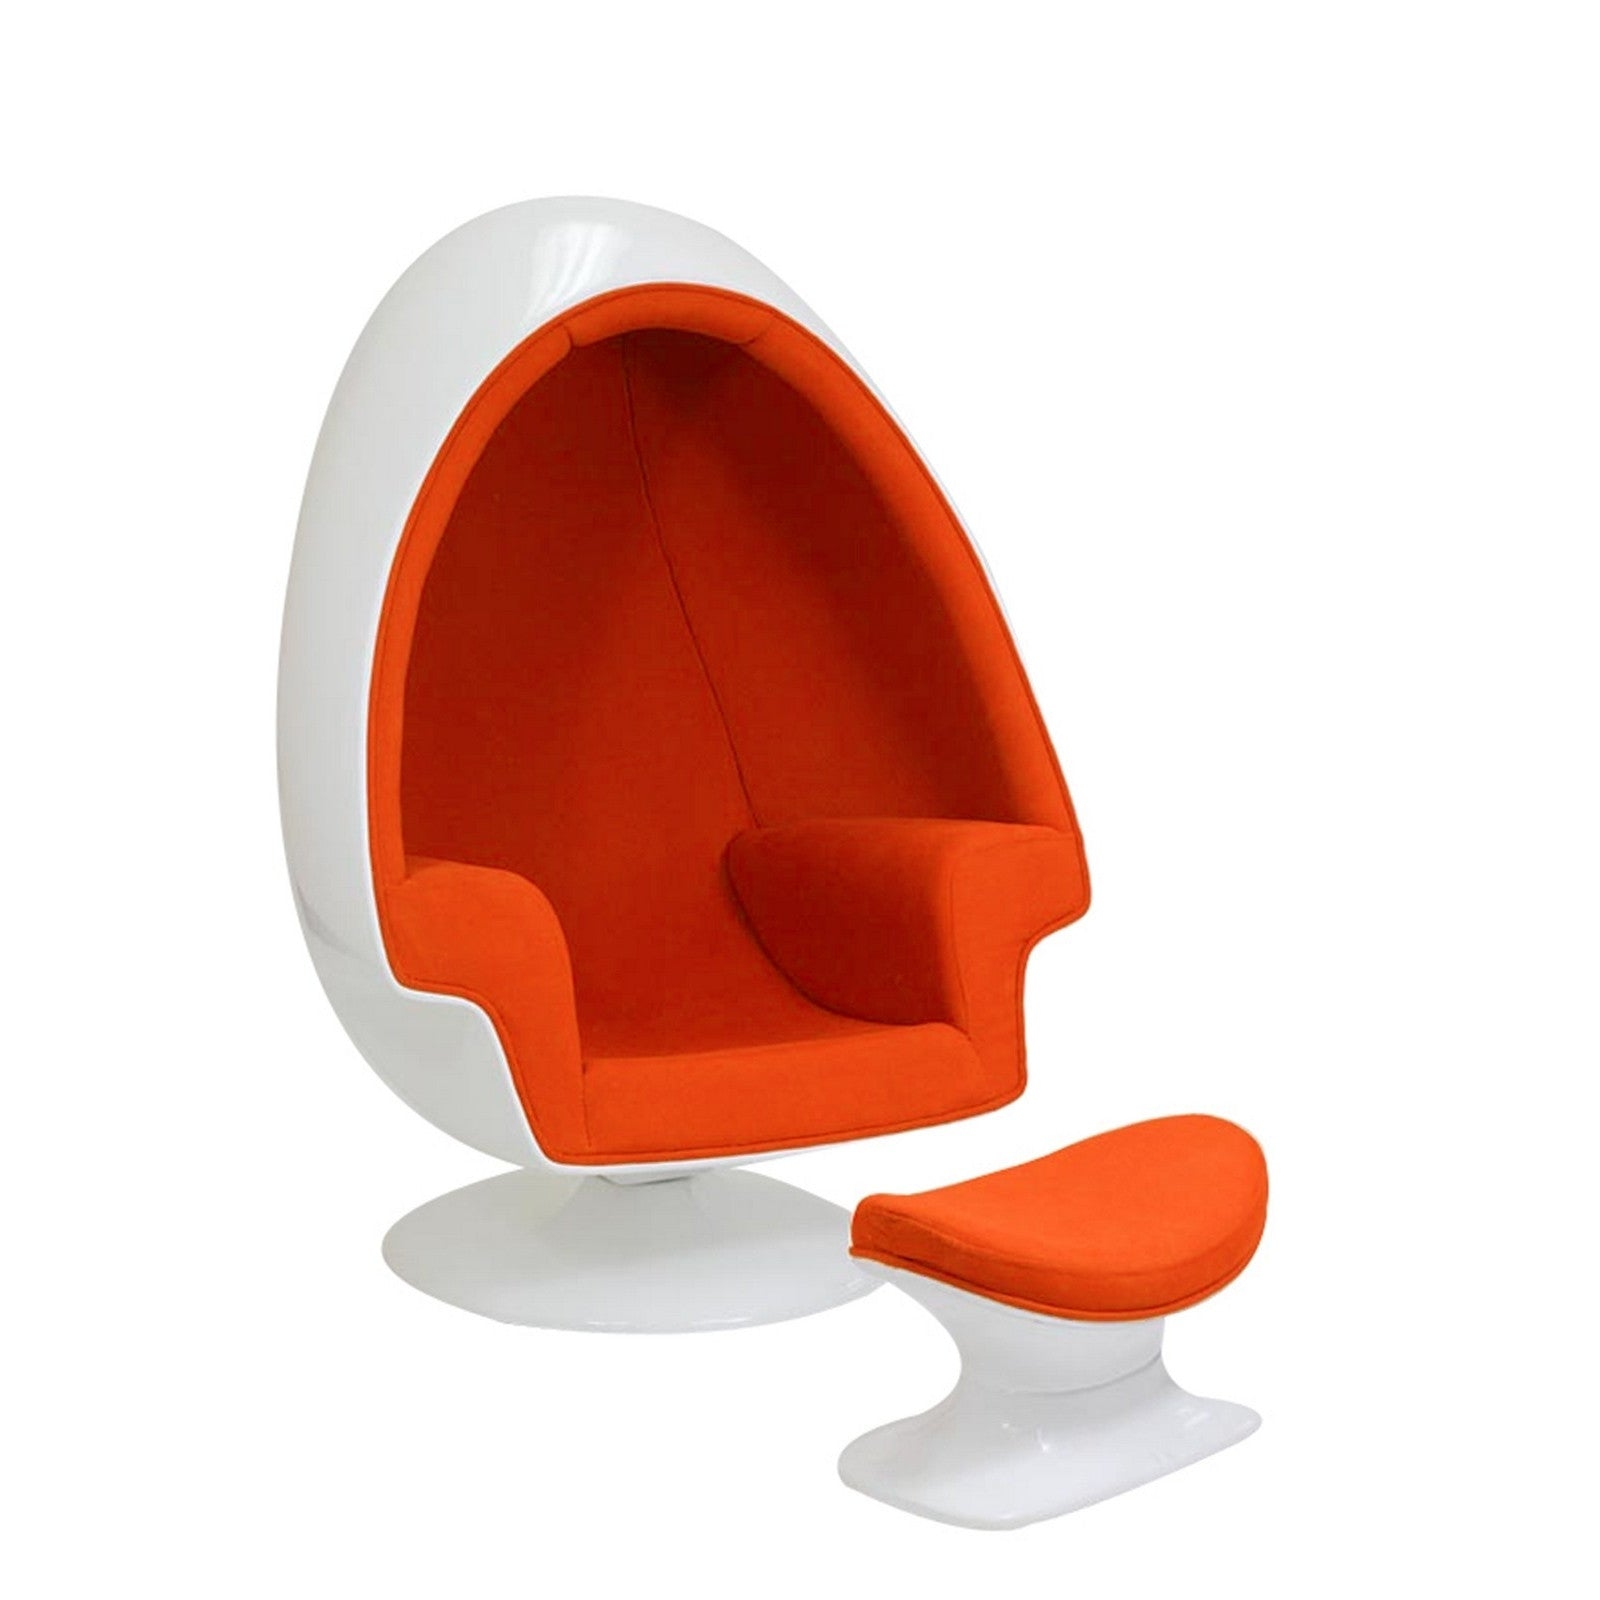 Alpha shell egg chair replica emfurn - Shell chair replica ...